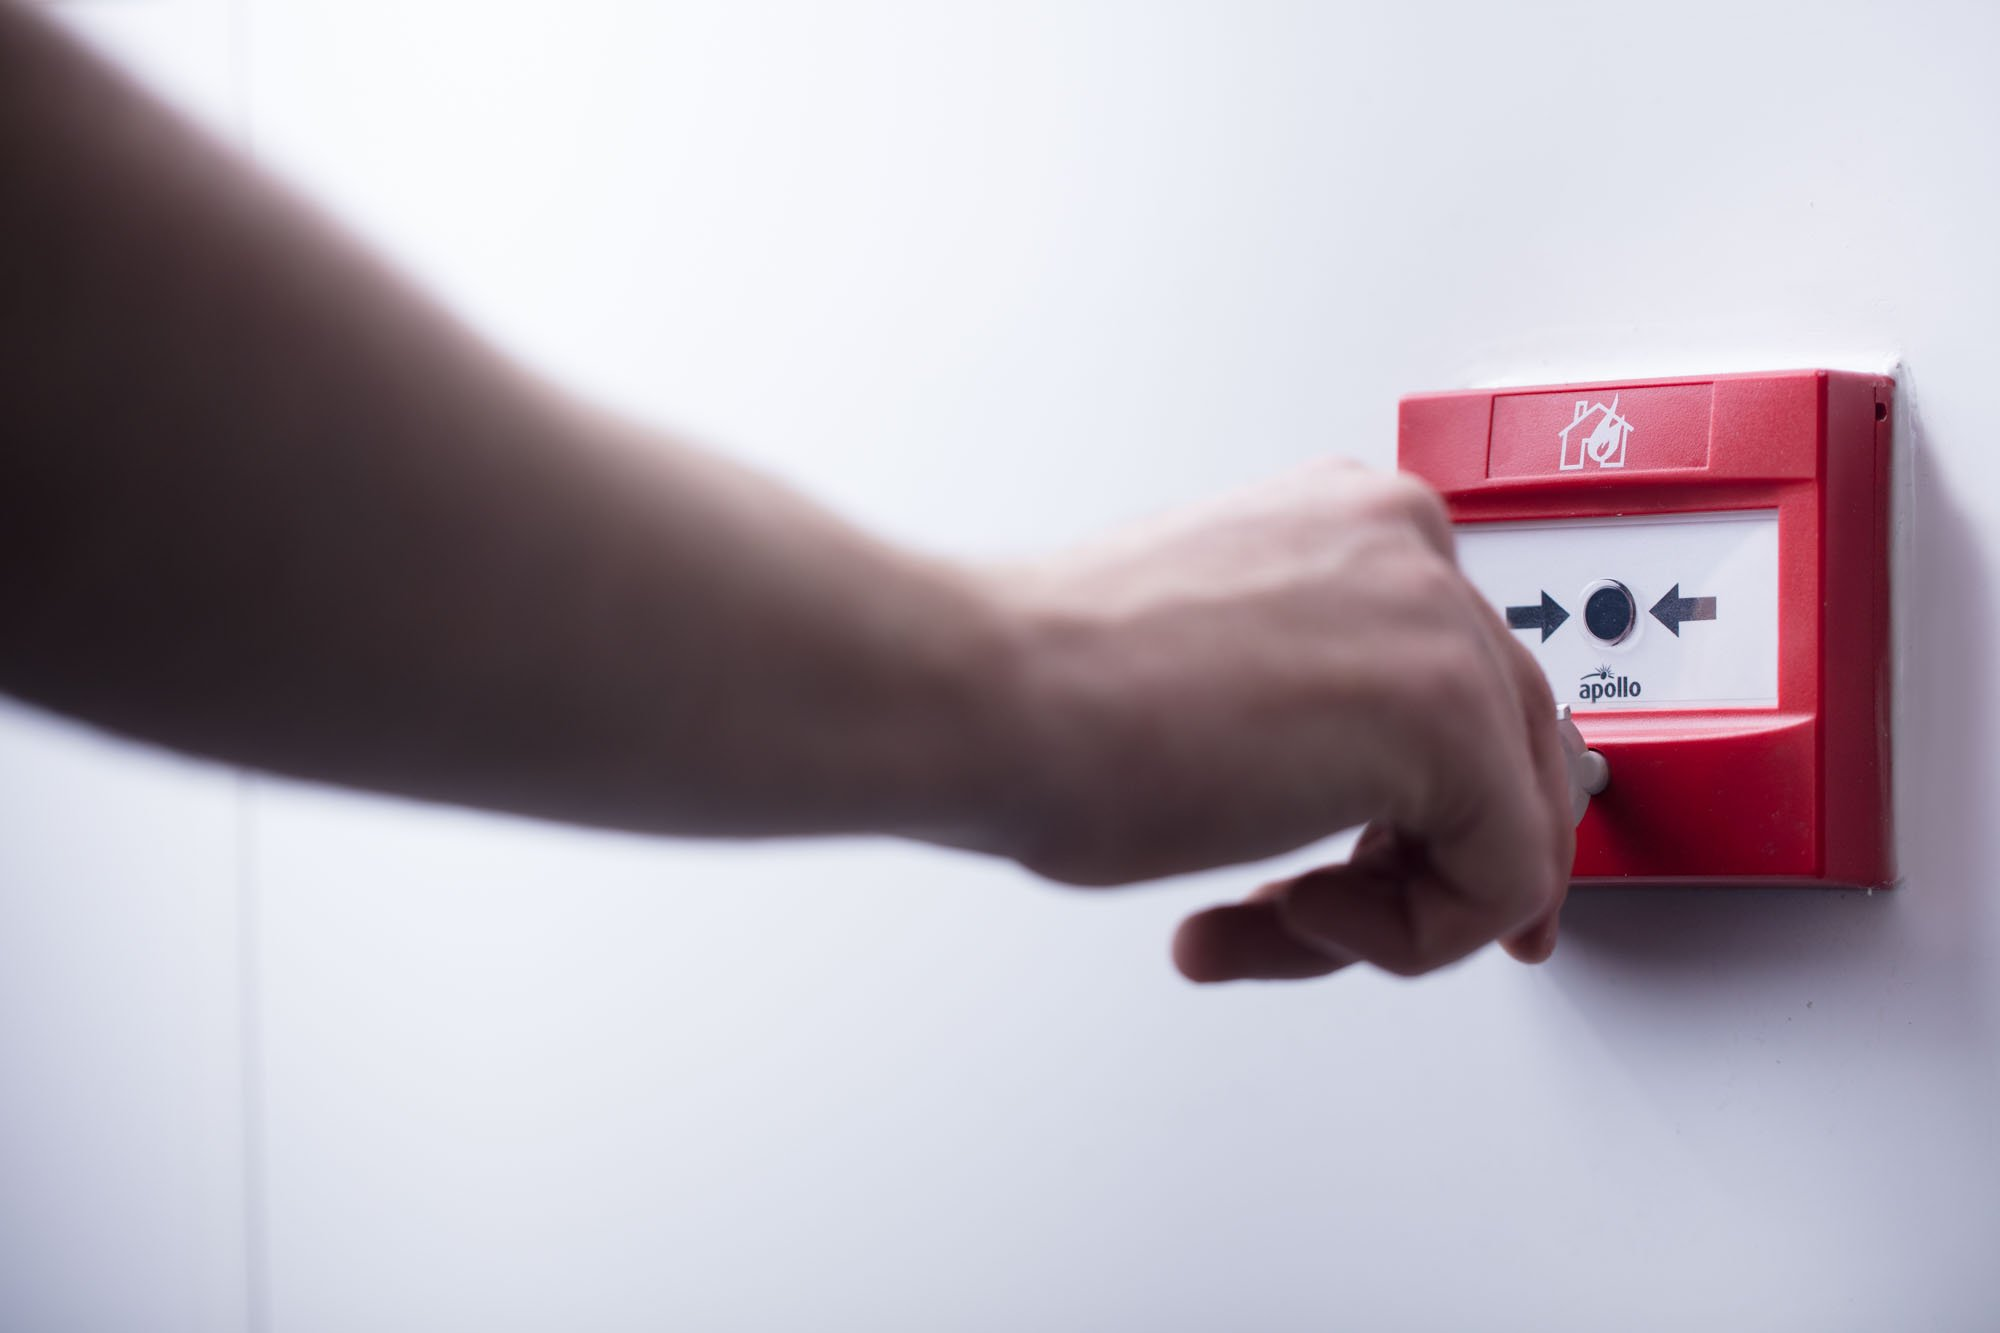 A guide to common fire detection set-ups in assisted living properties